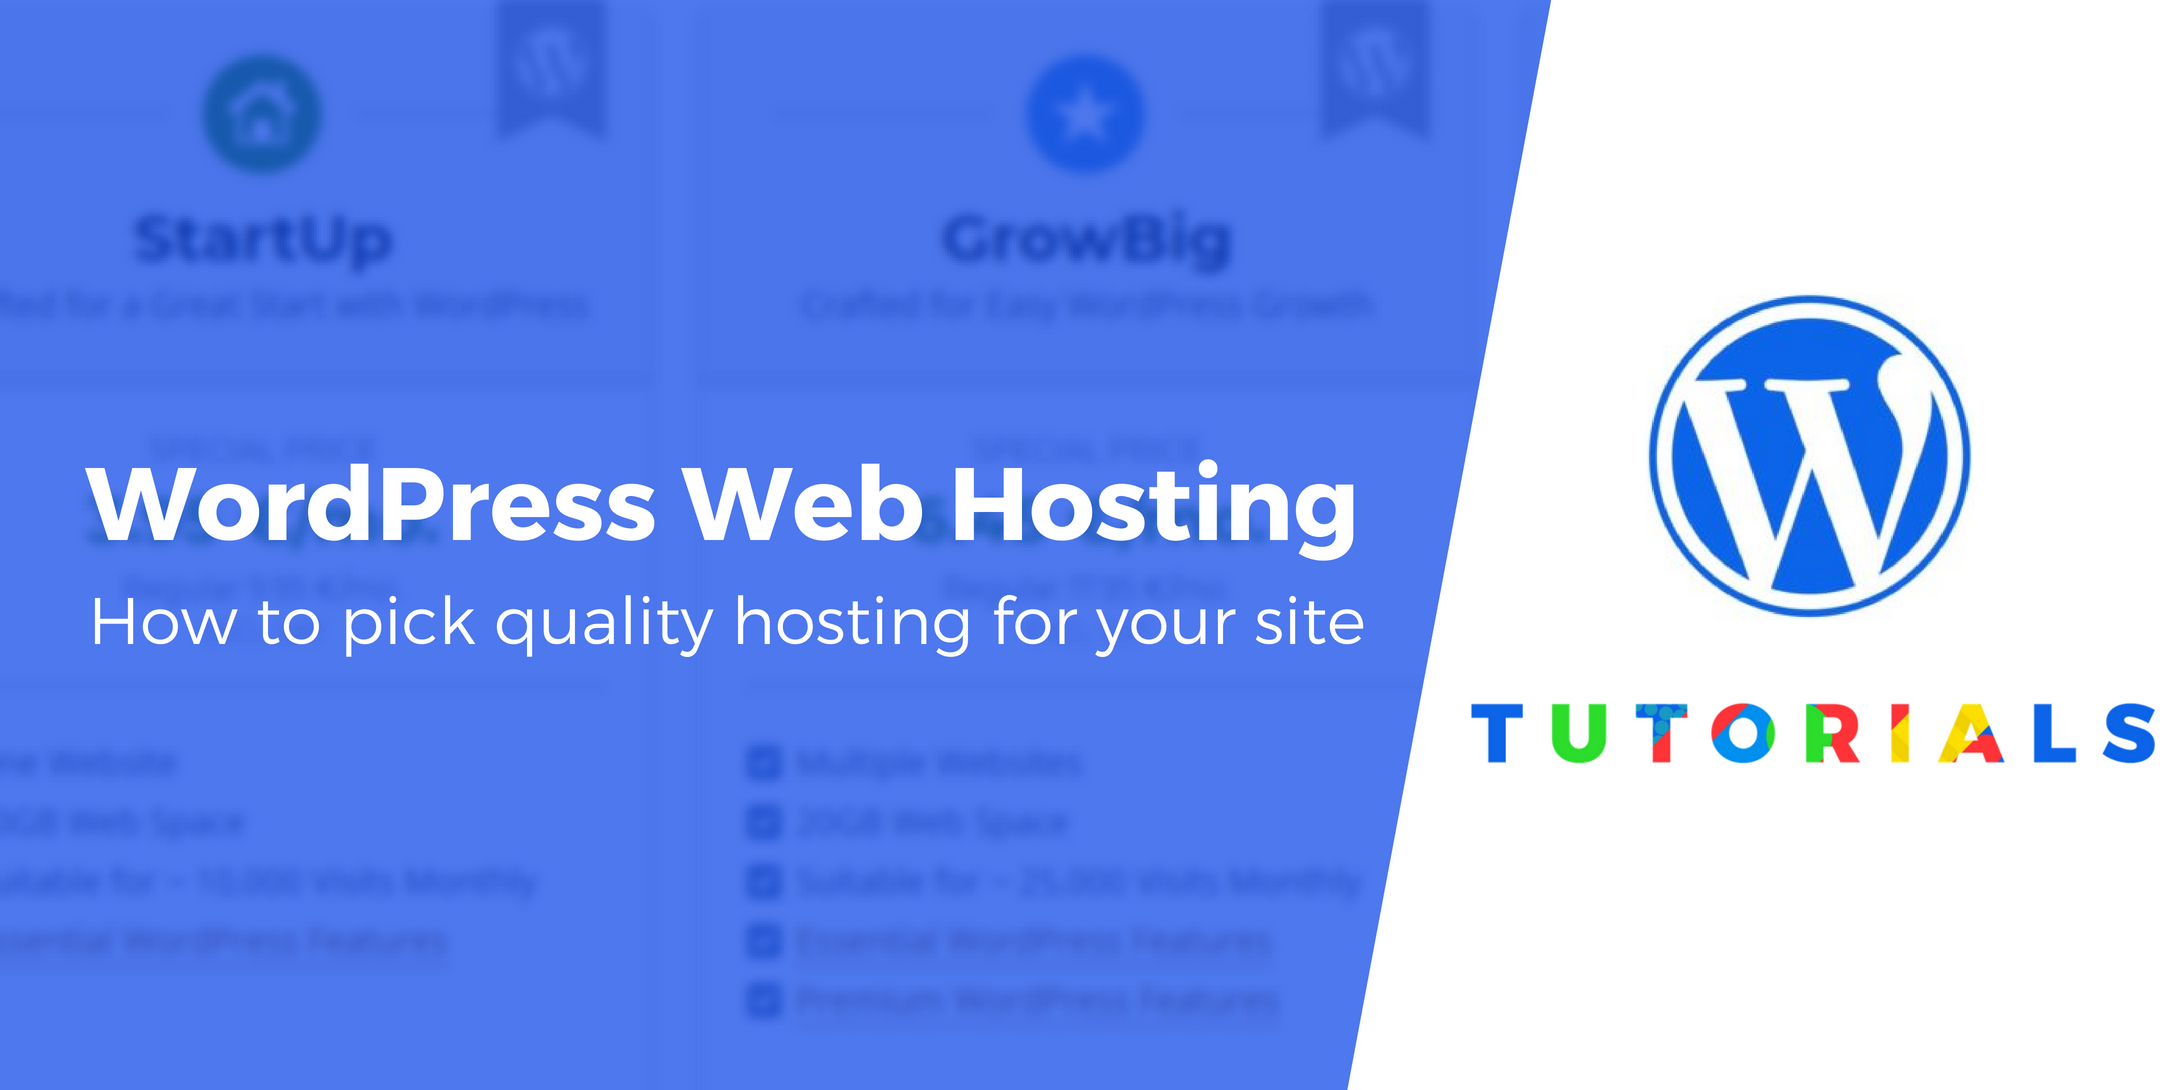 wordpress web hosting company